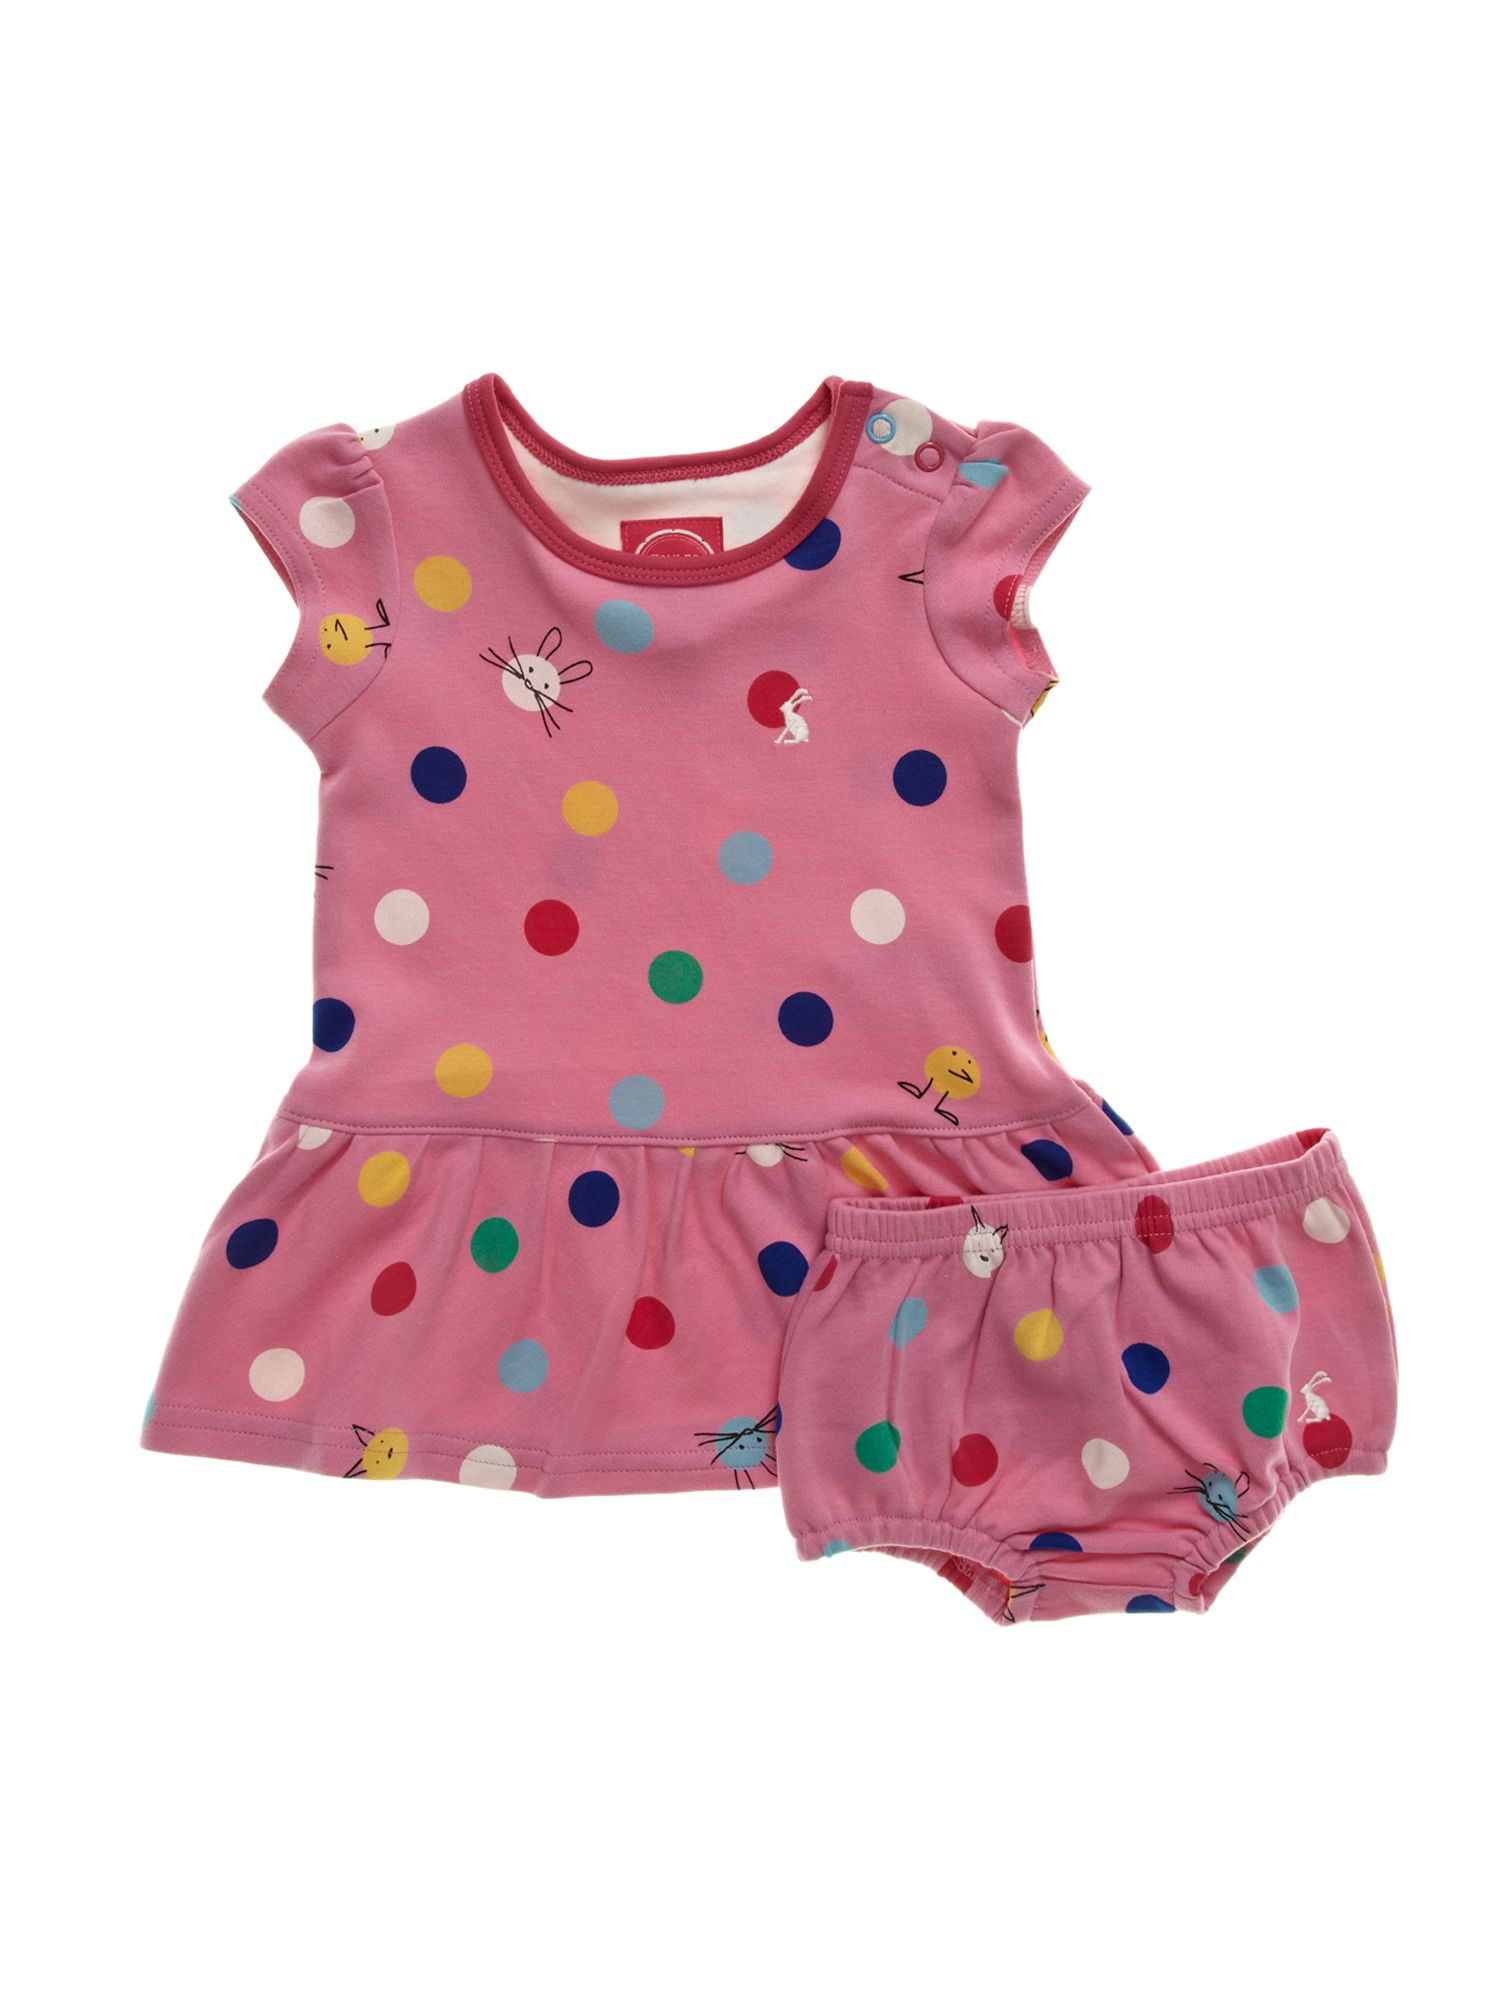 Baby girl`s spot print dress & pants set